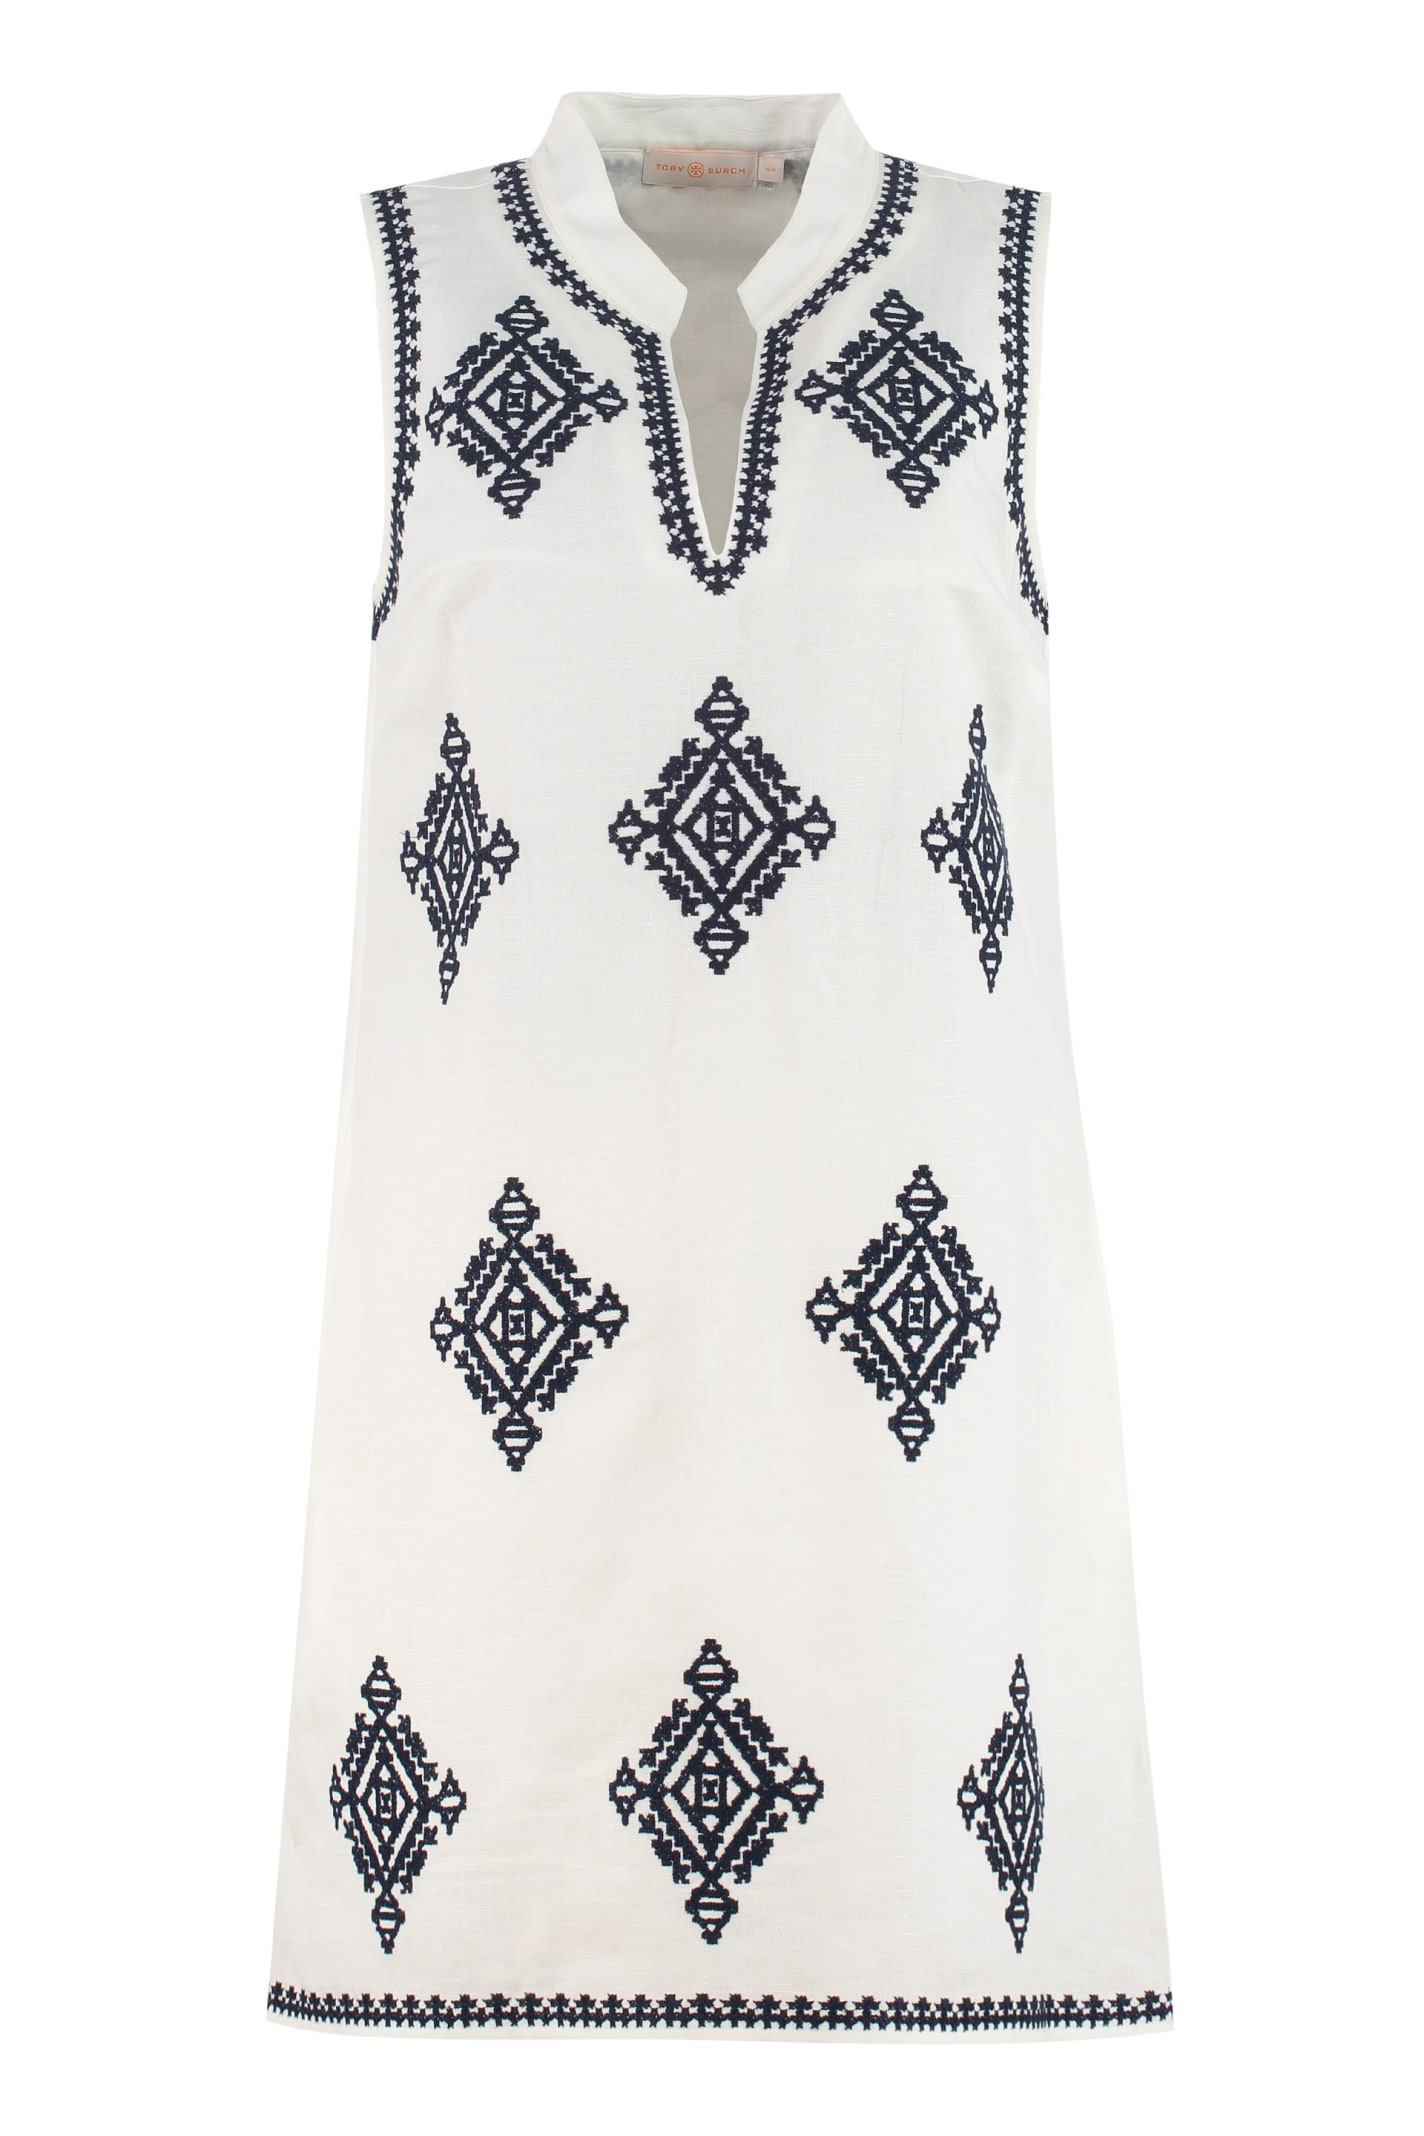 Buy Tory Burch Celeste Embroidered Mini Dress online, shop Tory Burch with free shipping